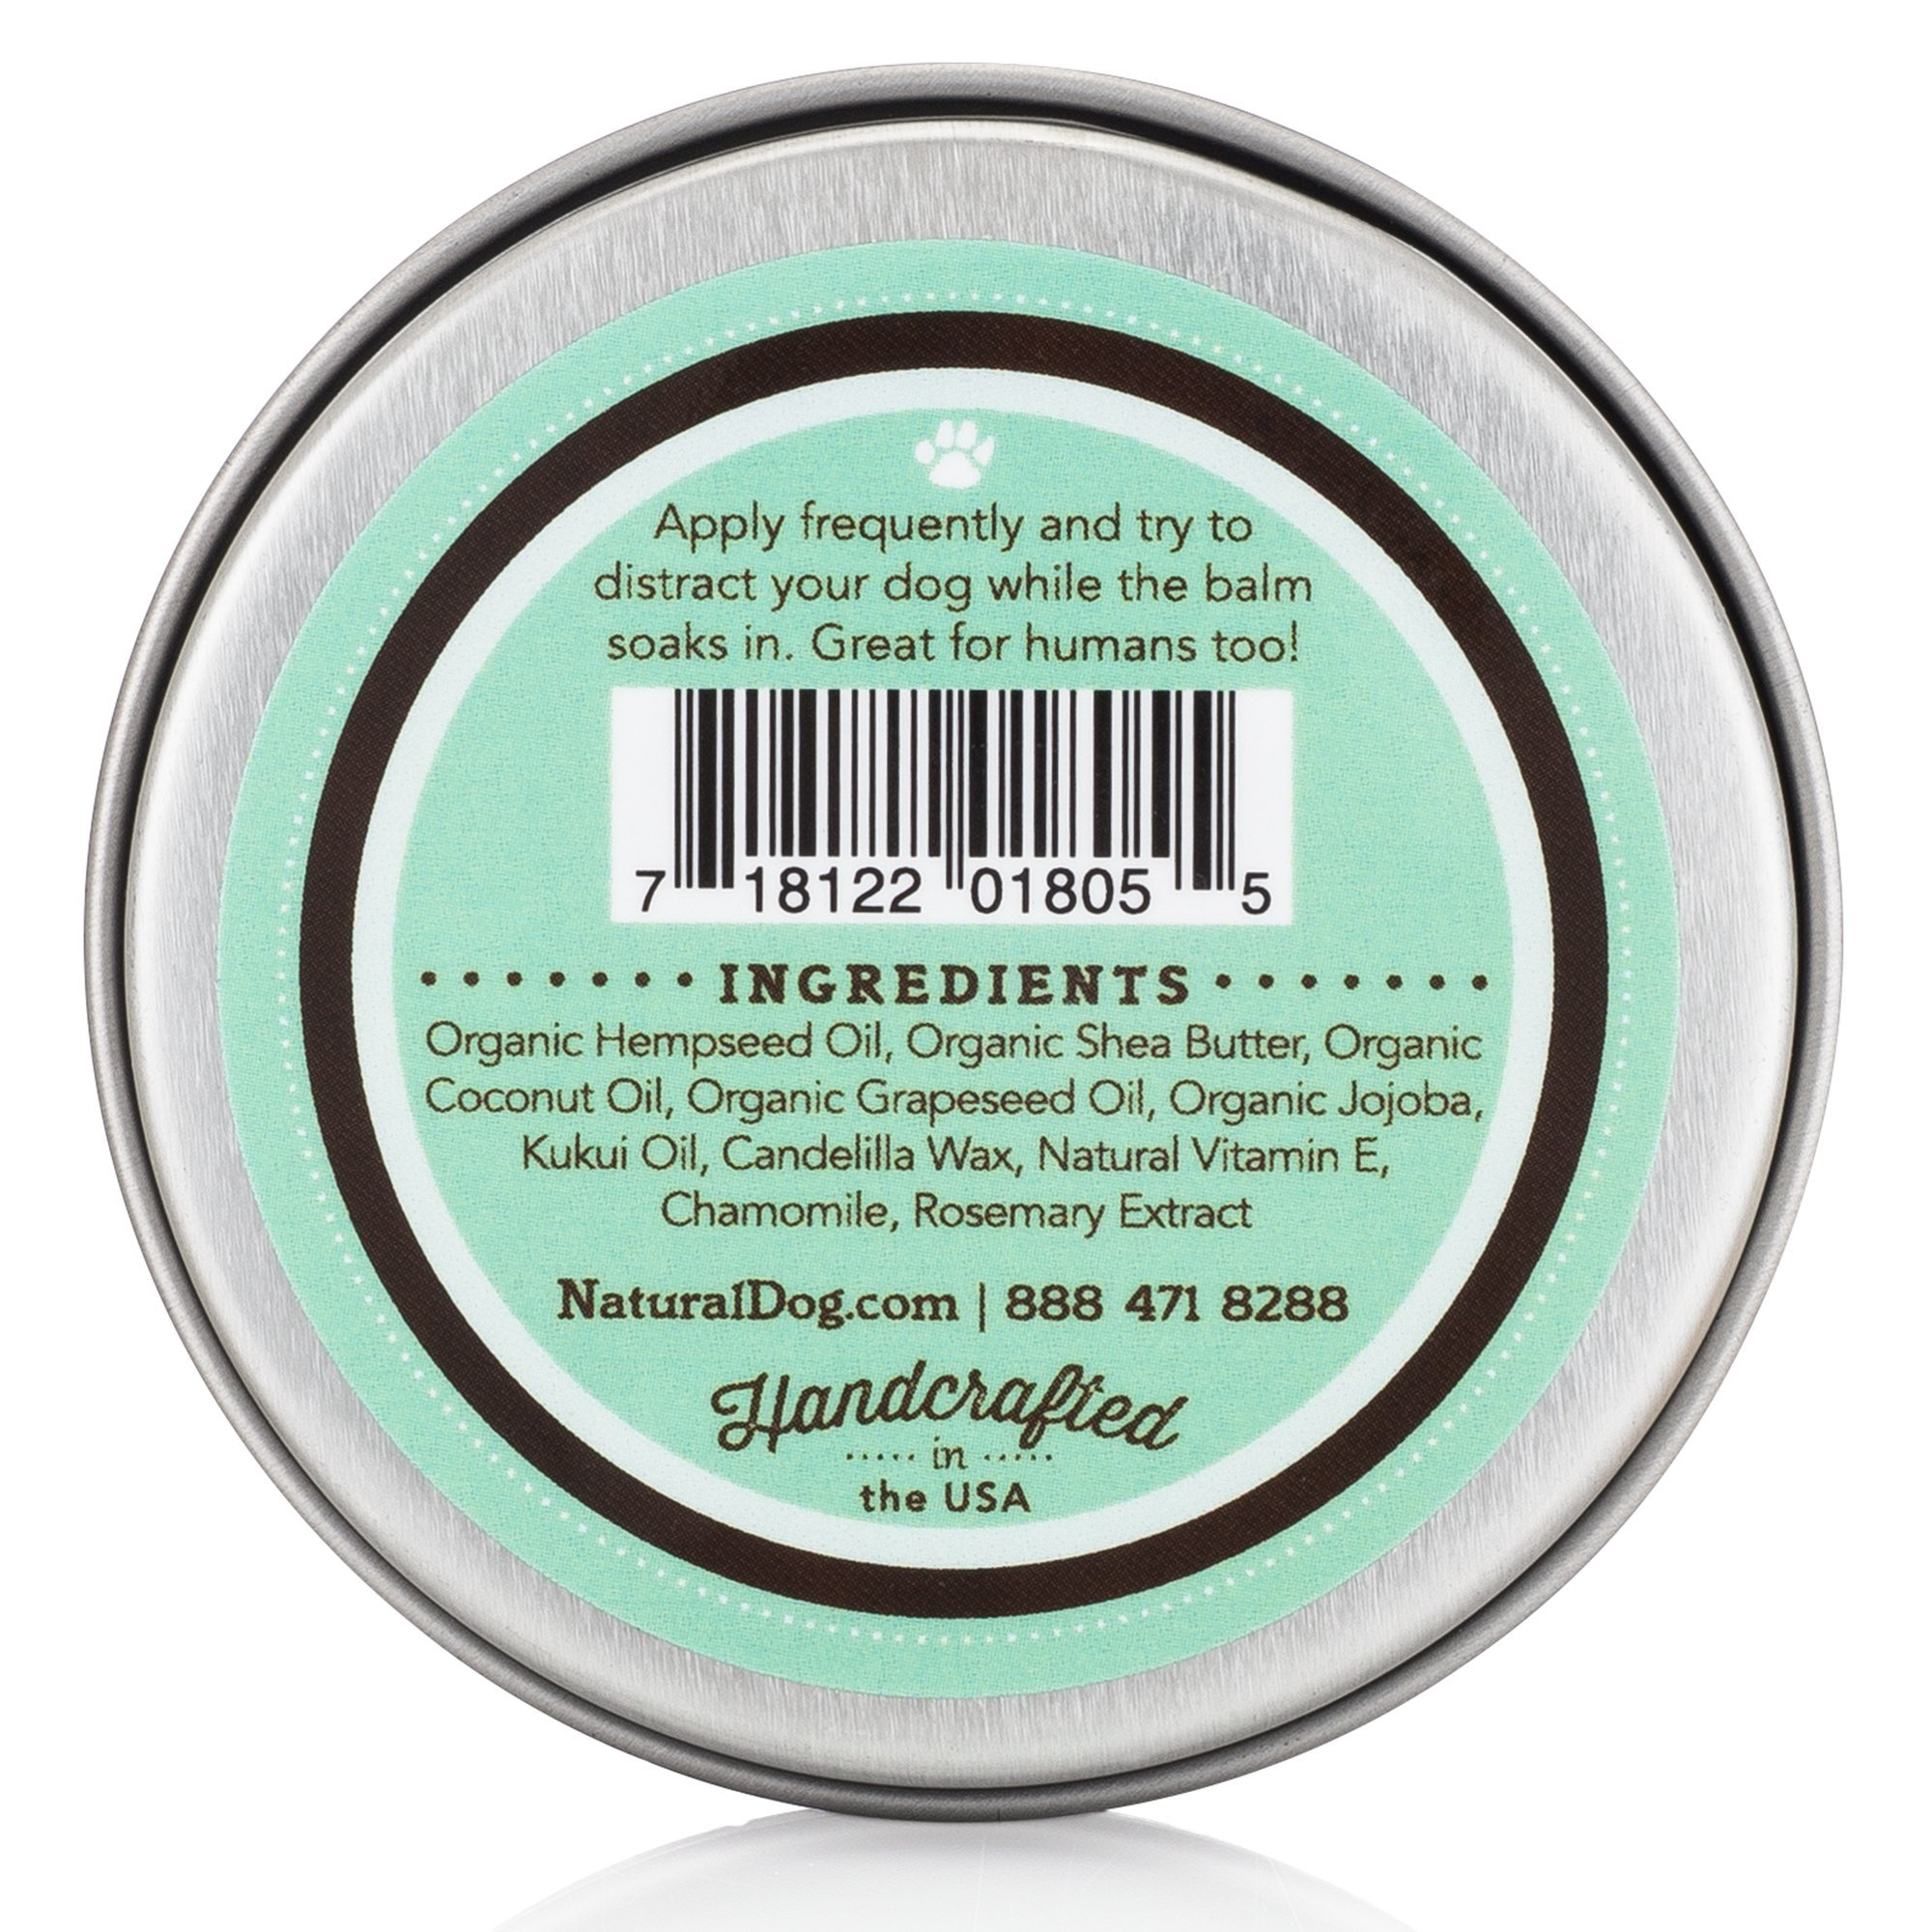 NaturalDog.com SNOUT SOOTHER | Heals Dry, Chapped, Cracked, and Crusty Dog Noses | 2oz Tin + 0.15oz Stick by NaturalDog.com (Image #2)